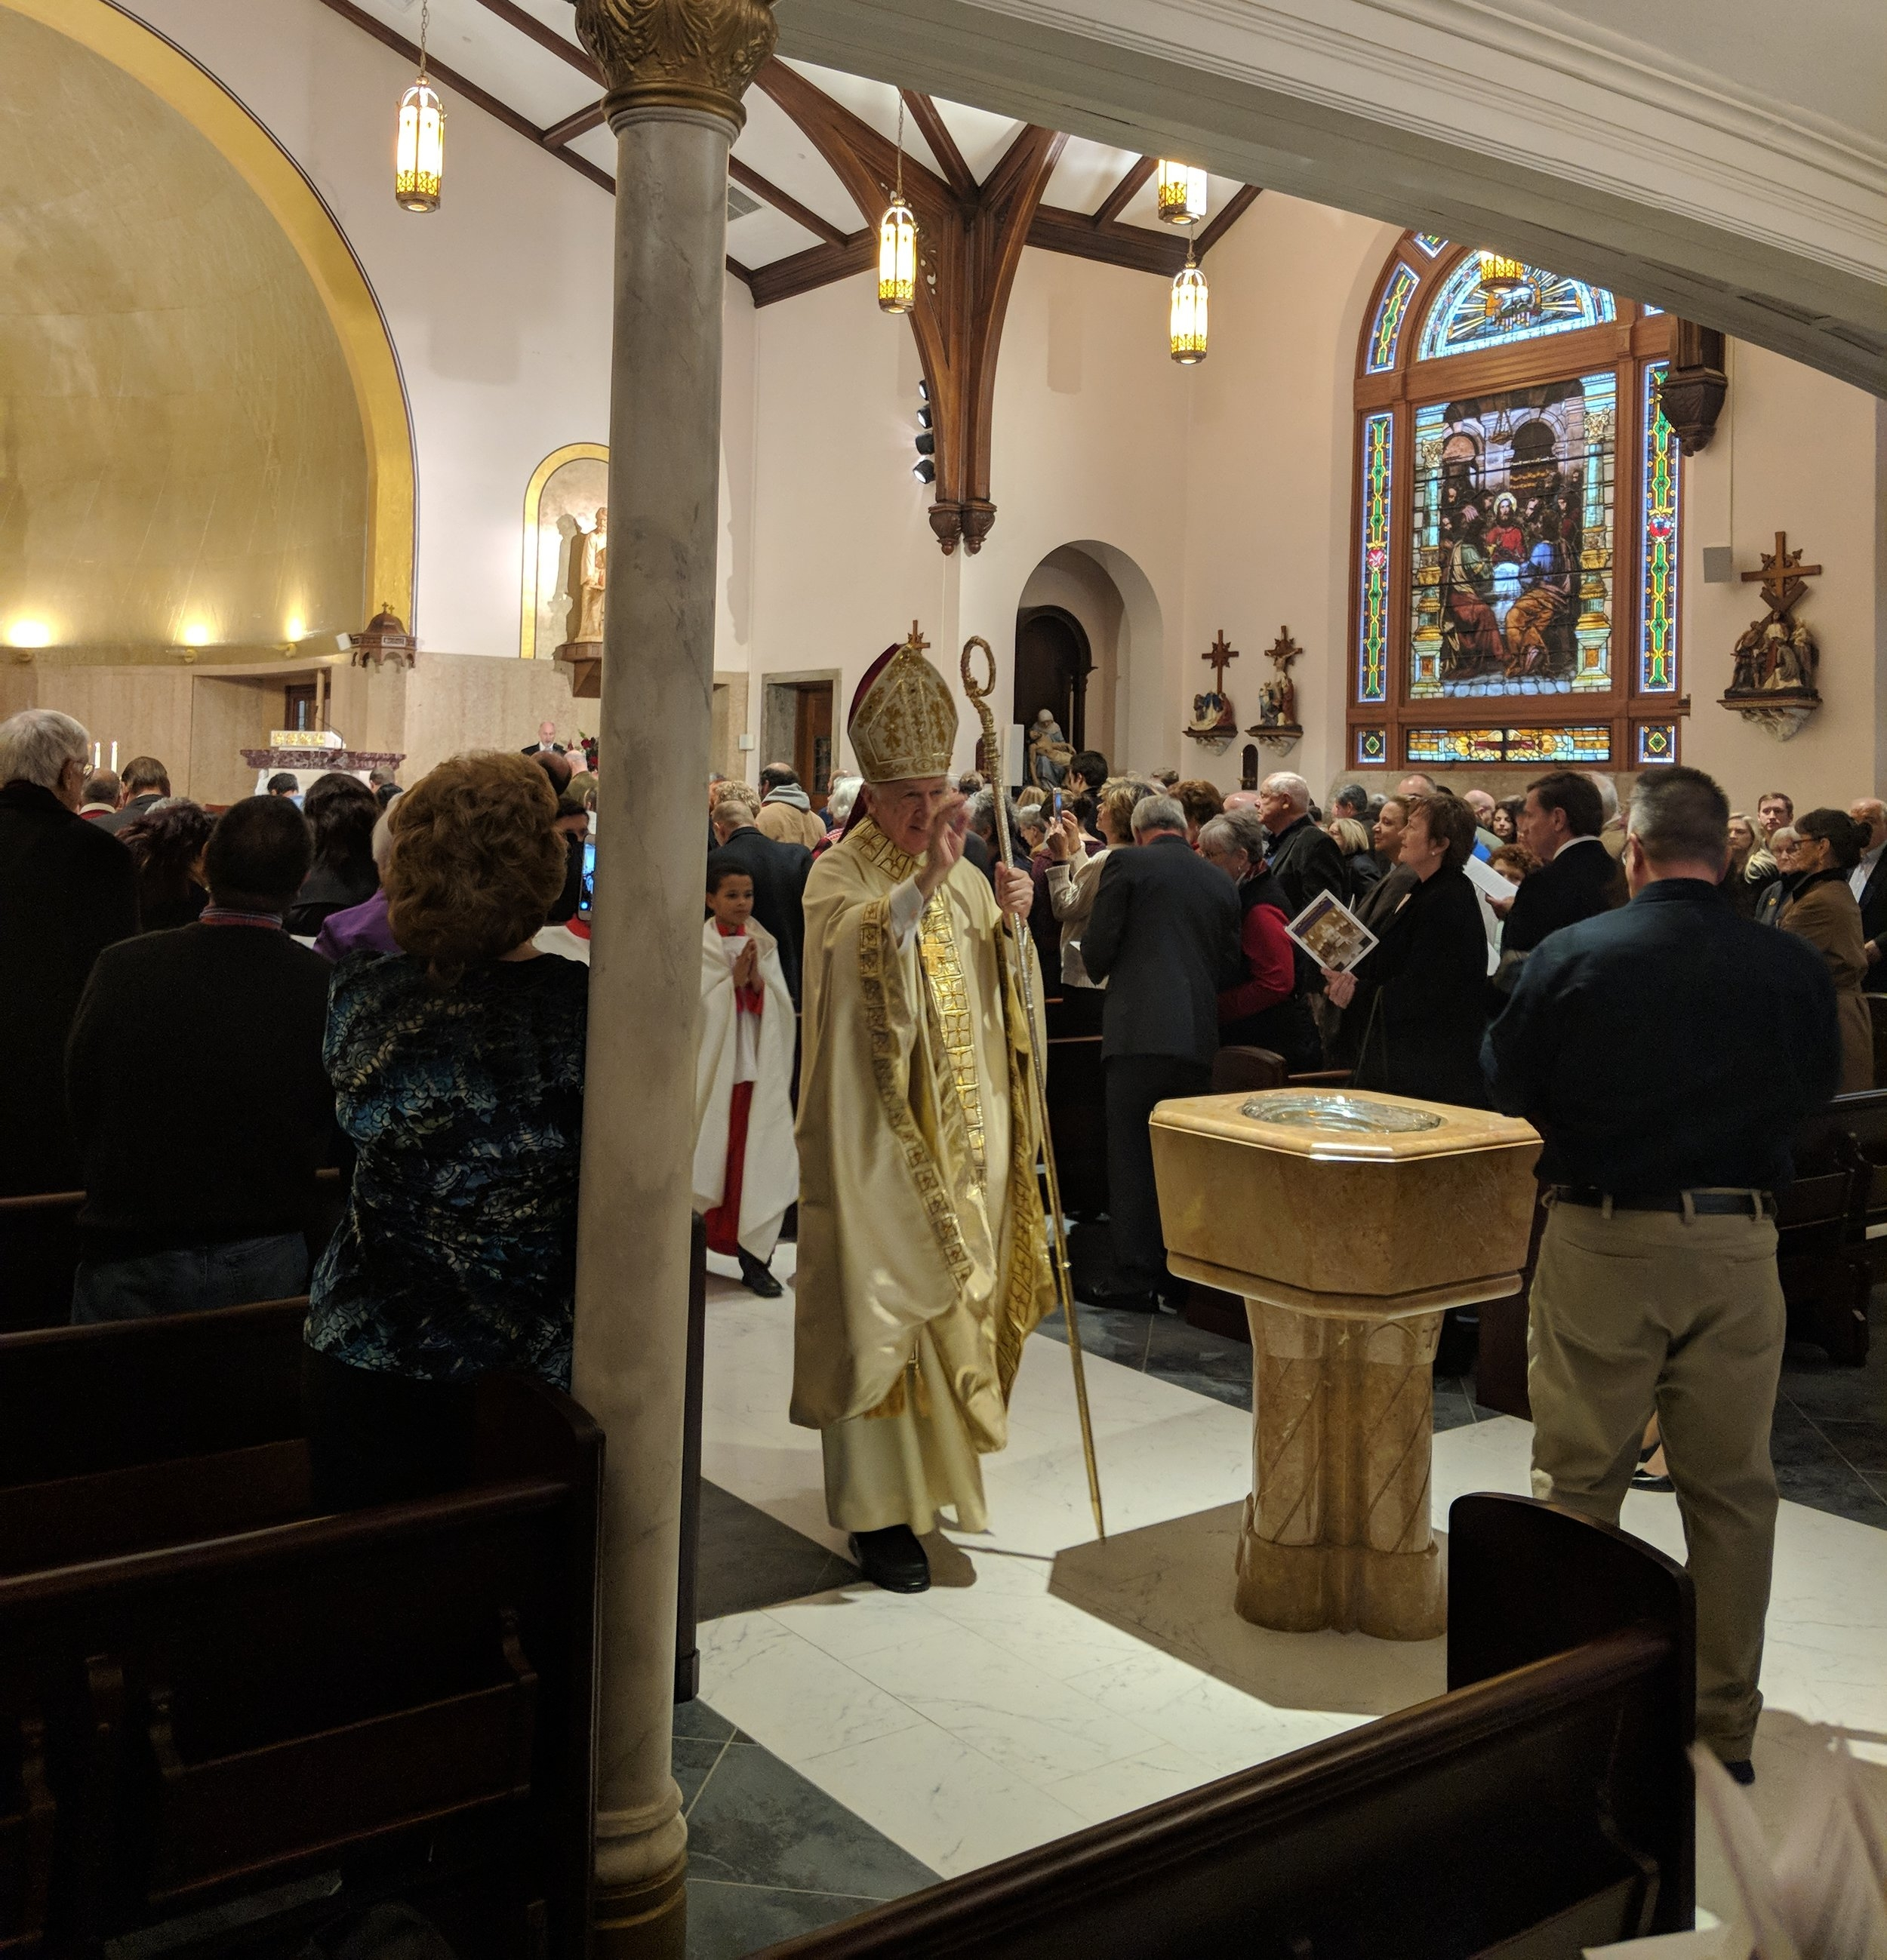 Bishop Bransfield (Diocese of Wheeling-Charleston) processes out during the concluding hymn of the dedication mass.